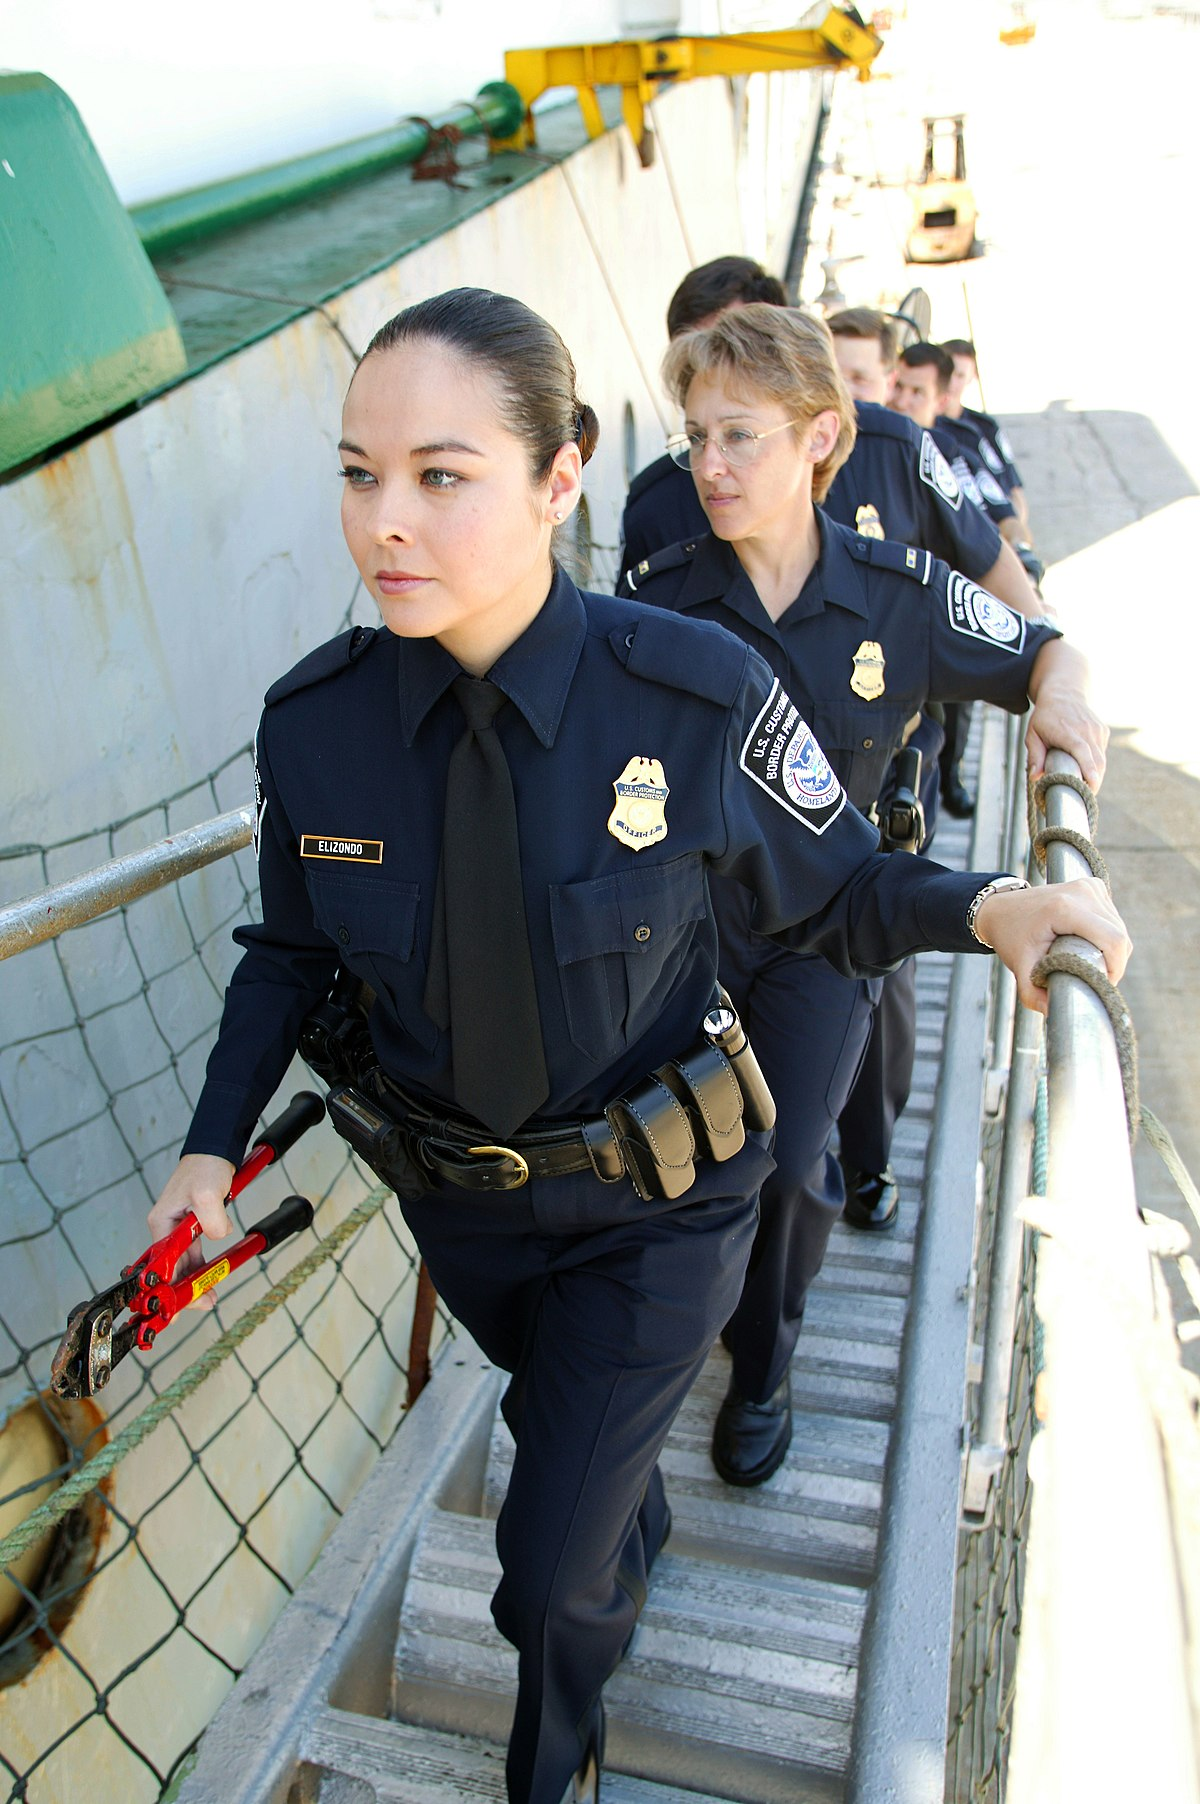 File:CBP female officers going aboard a ship jpg - Wikimedia